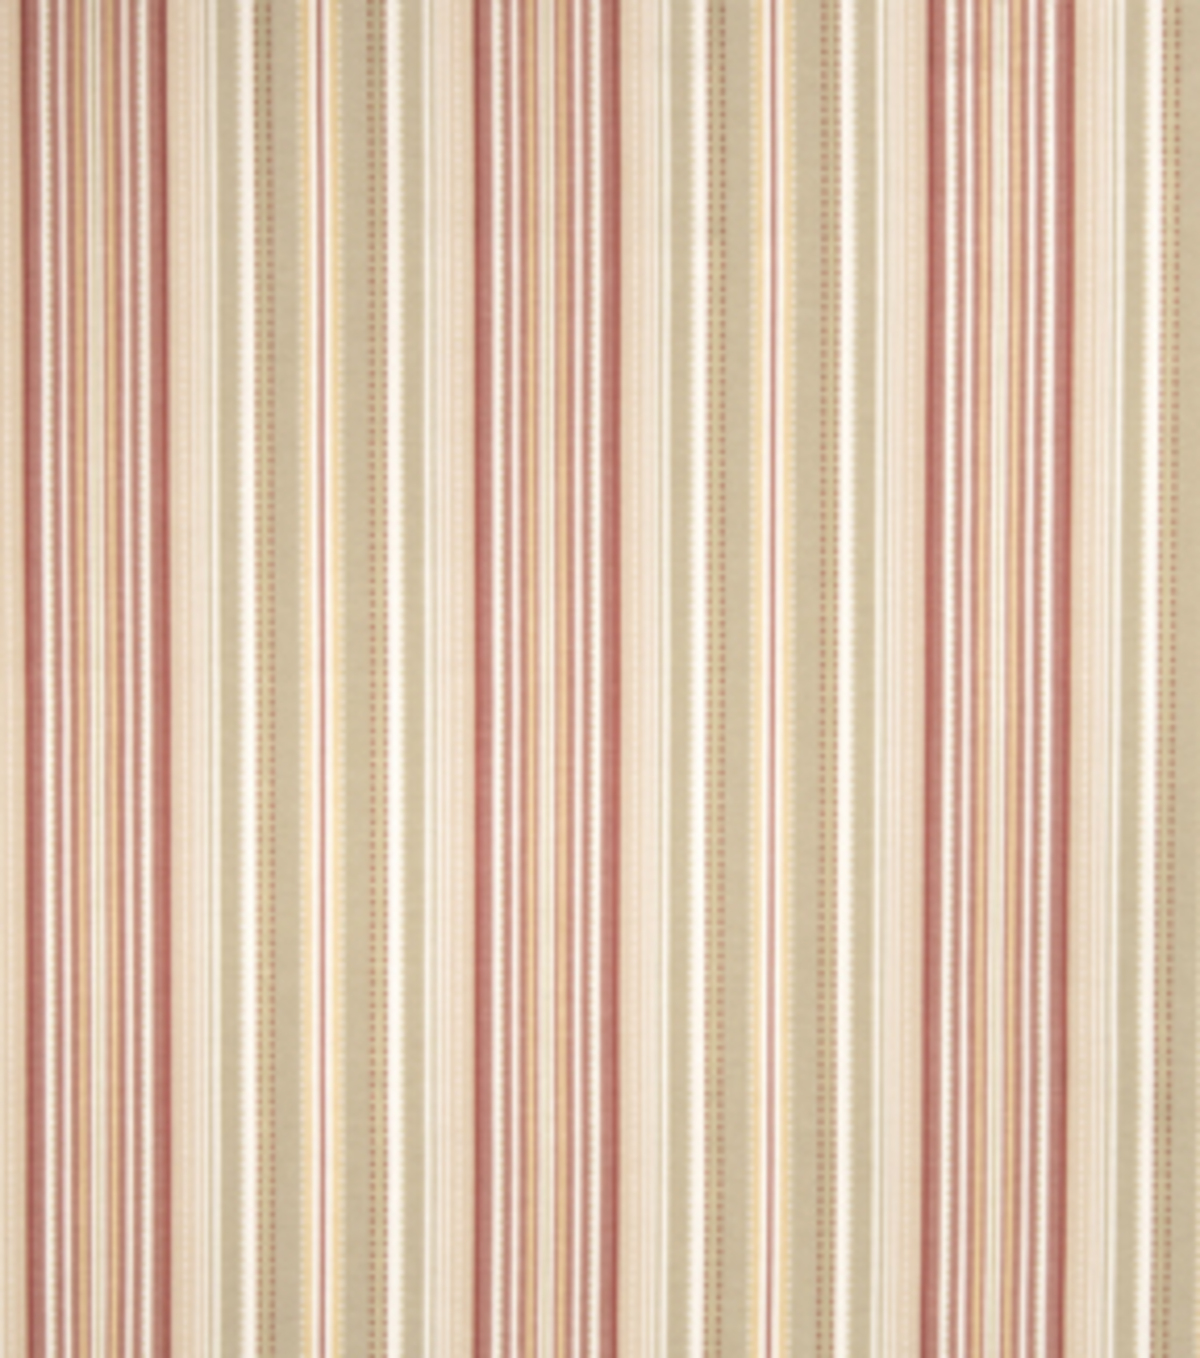 Home Decor 8\u0022x8\u0022 Fabric Swatch-Eaton Square Meredith Spring